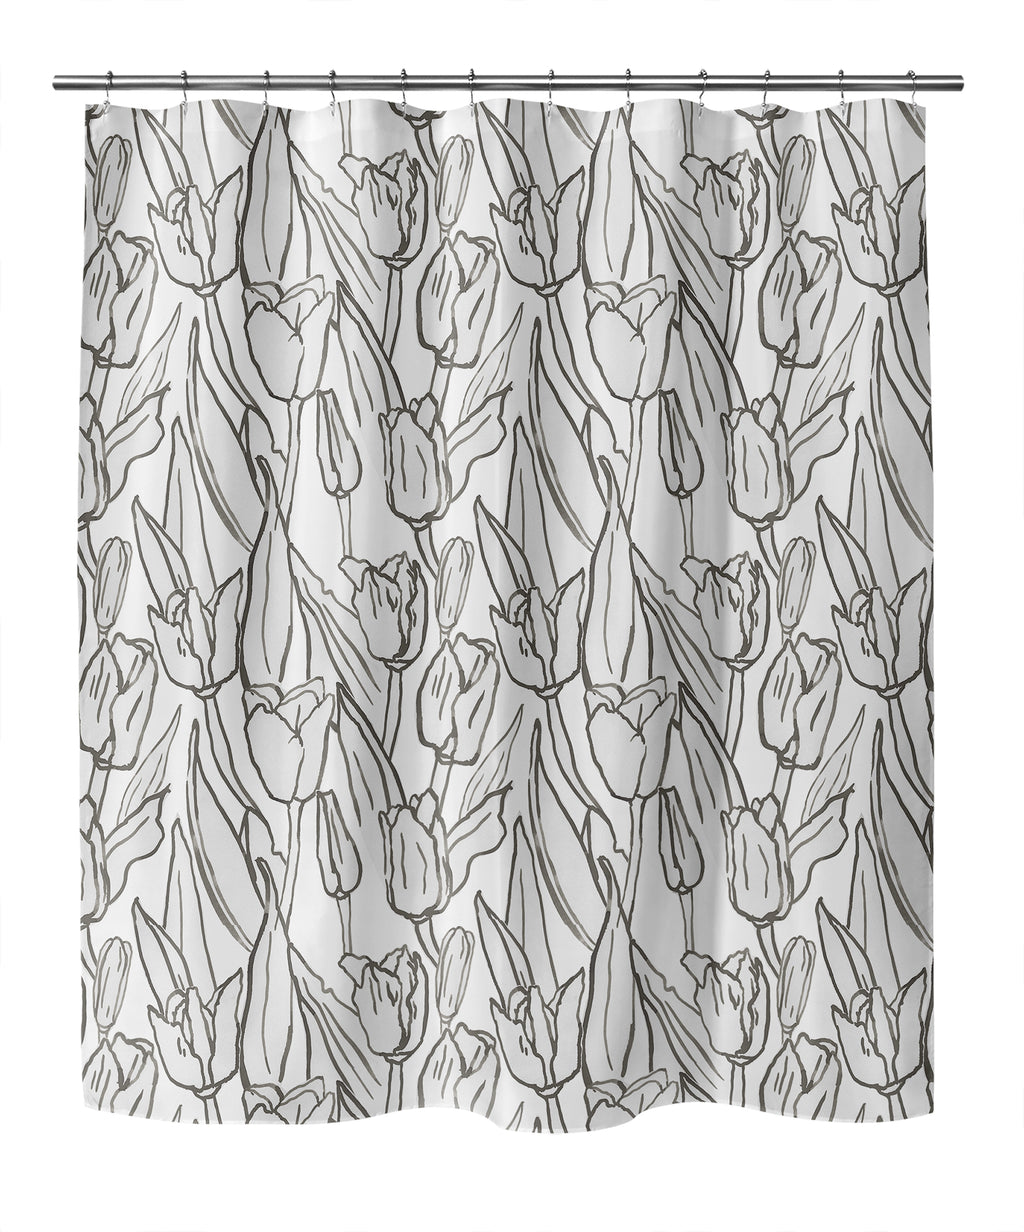 TULIP FIELD BW Shower Curtain By Becky Bailey